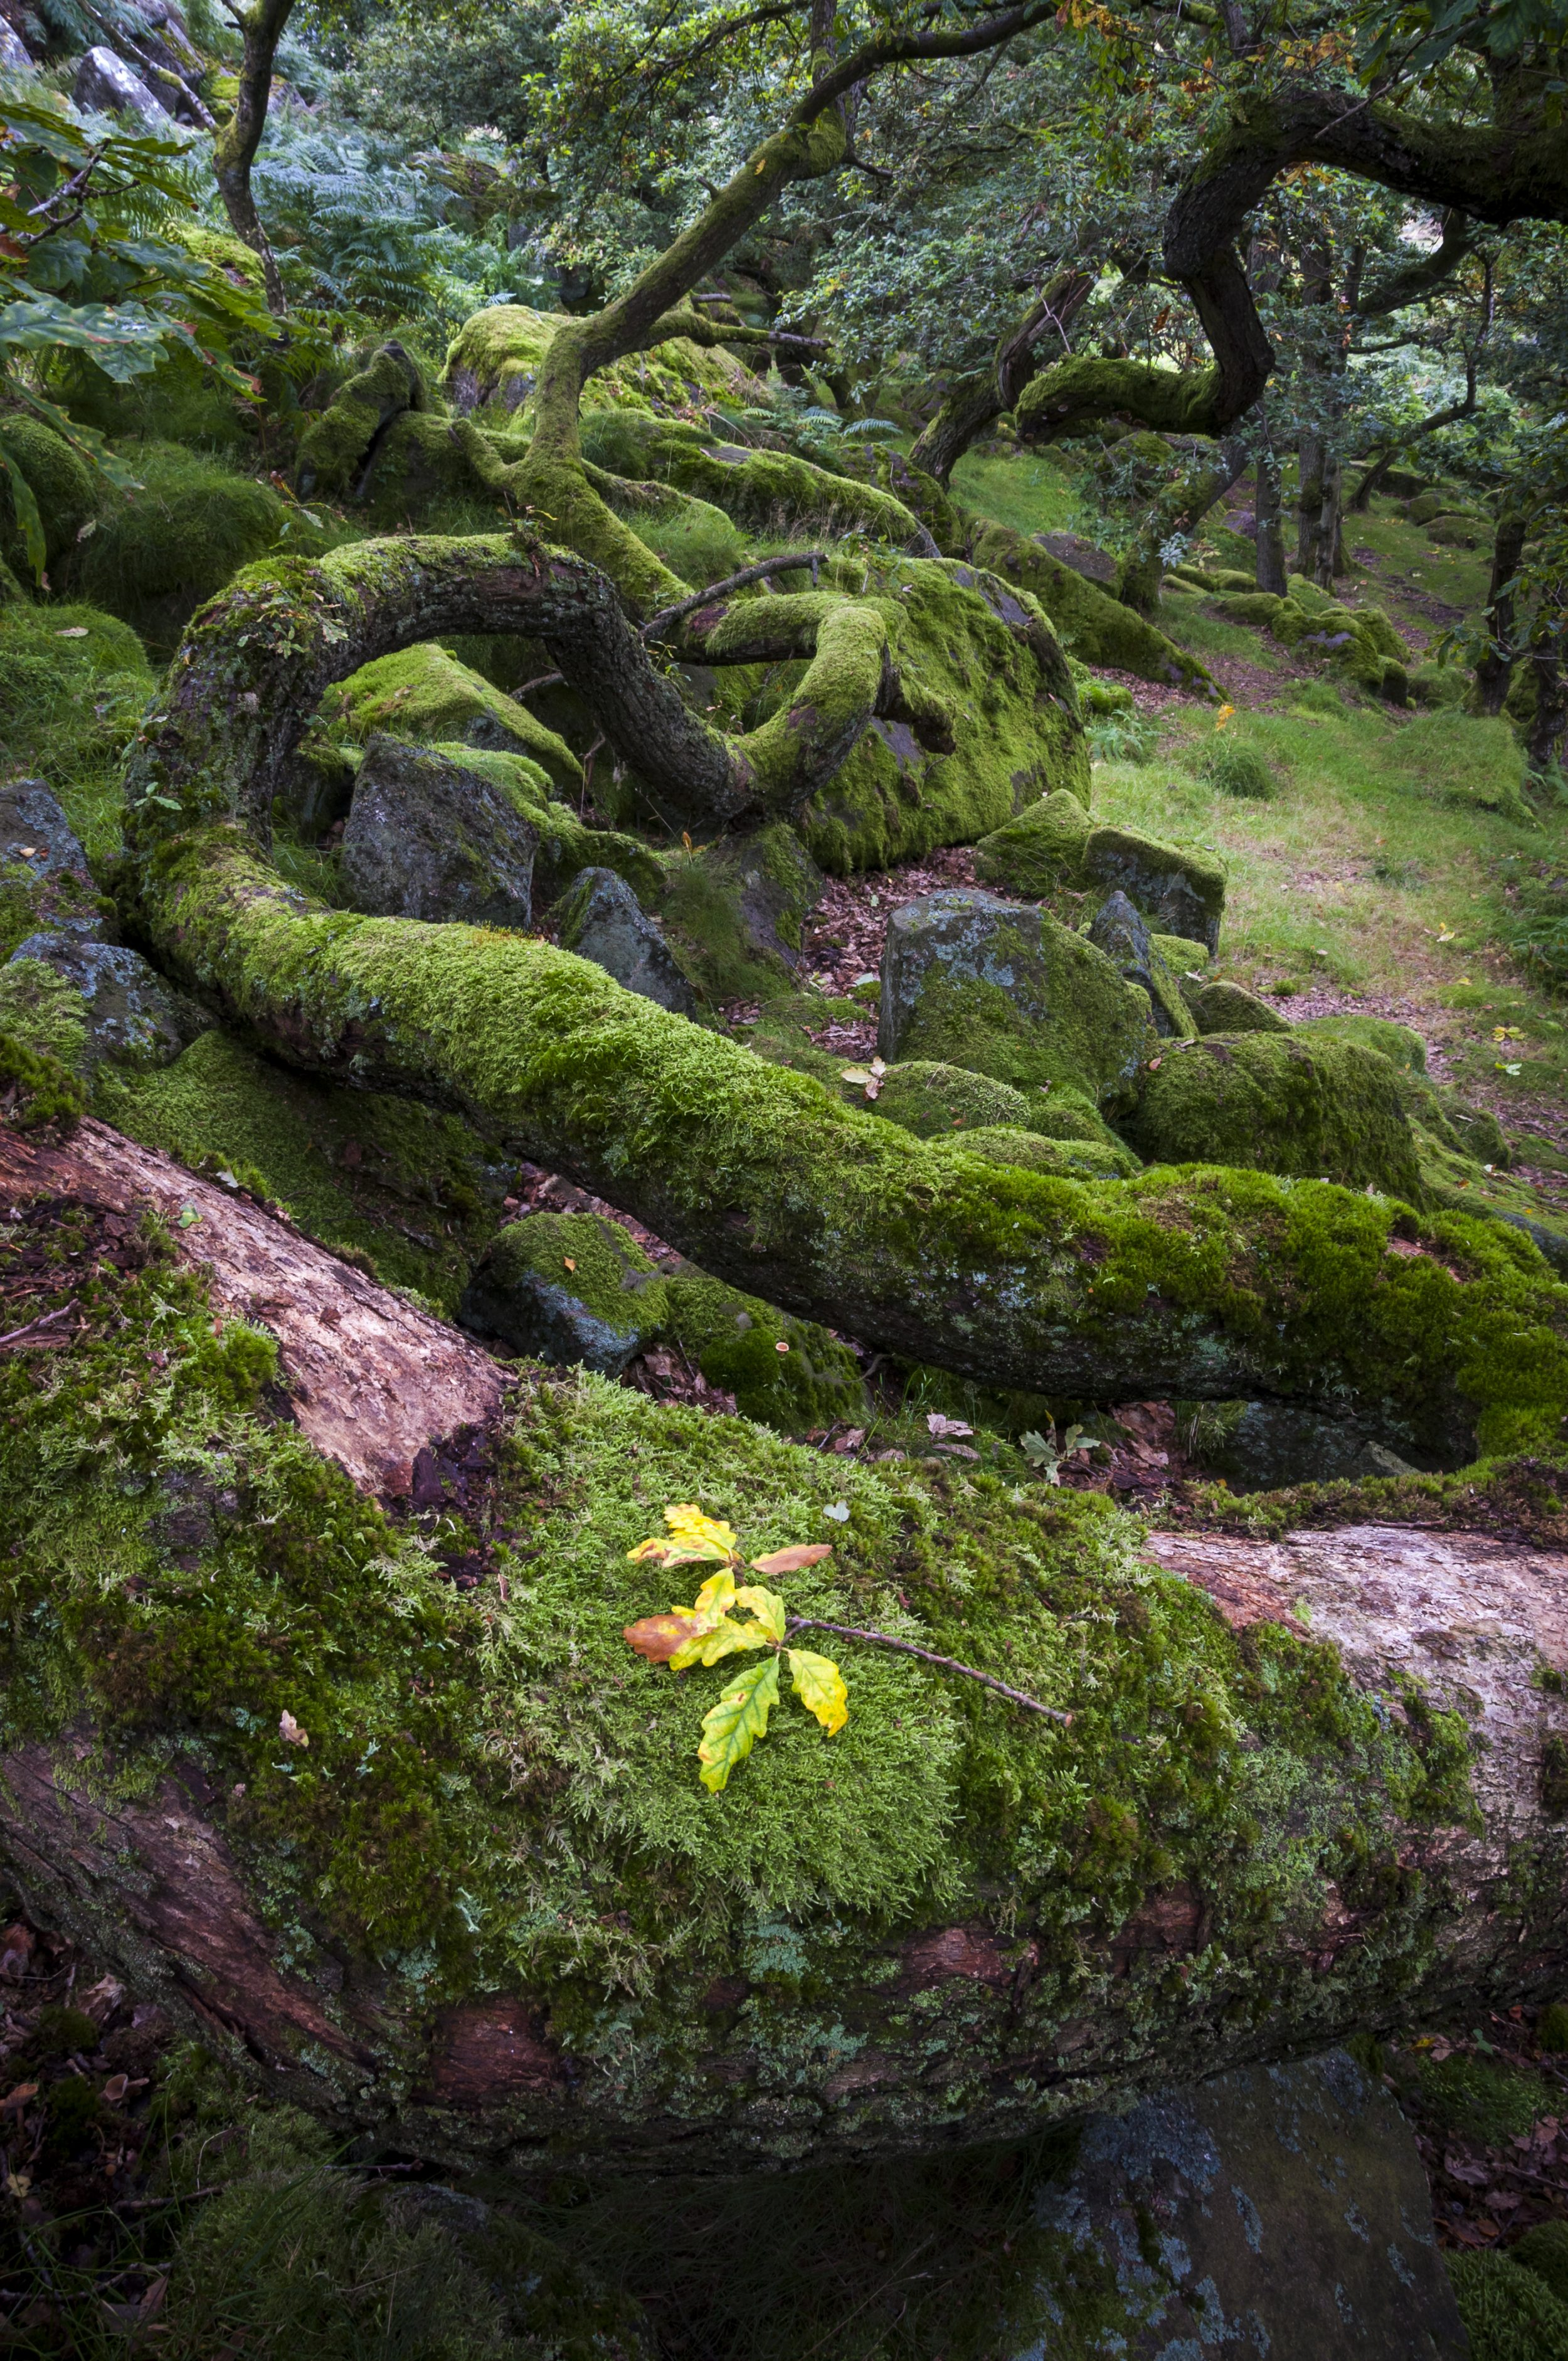 Moss: The 350-million-year-old plants that turn the